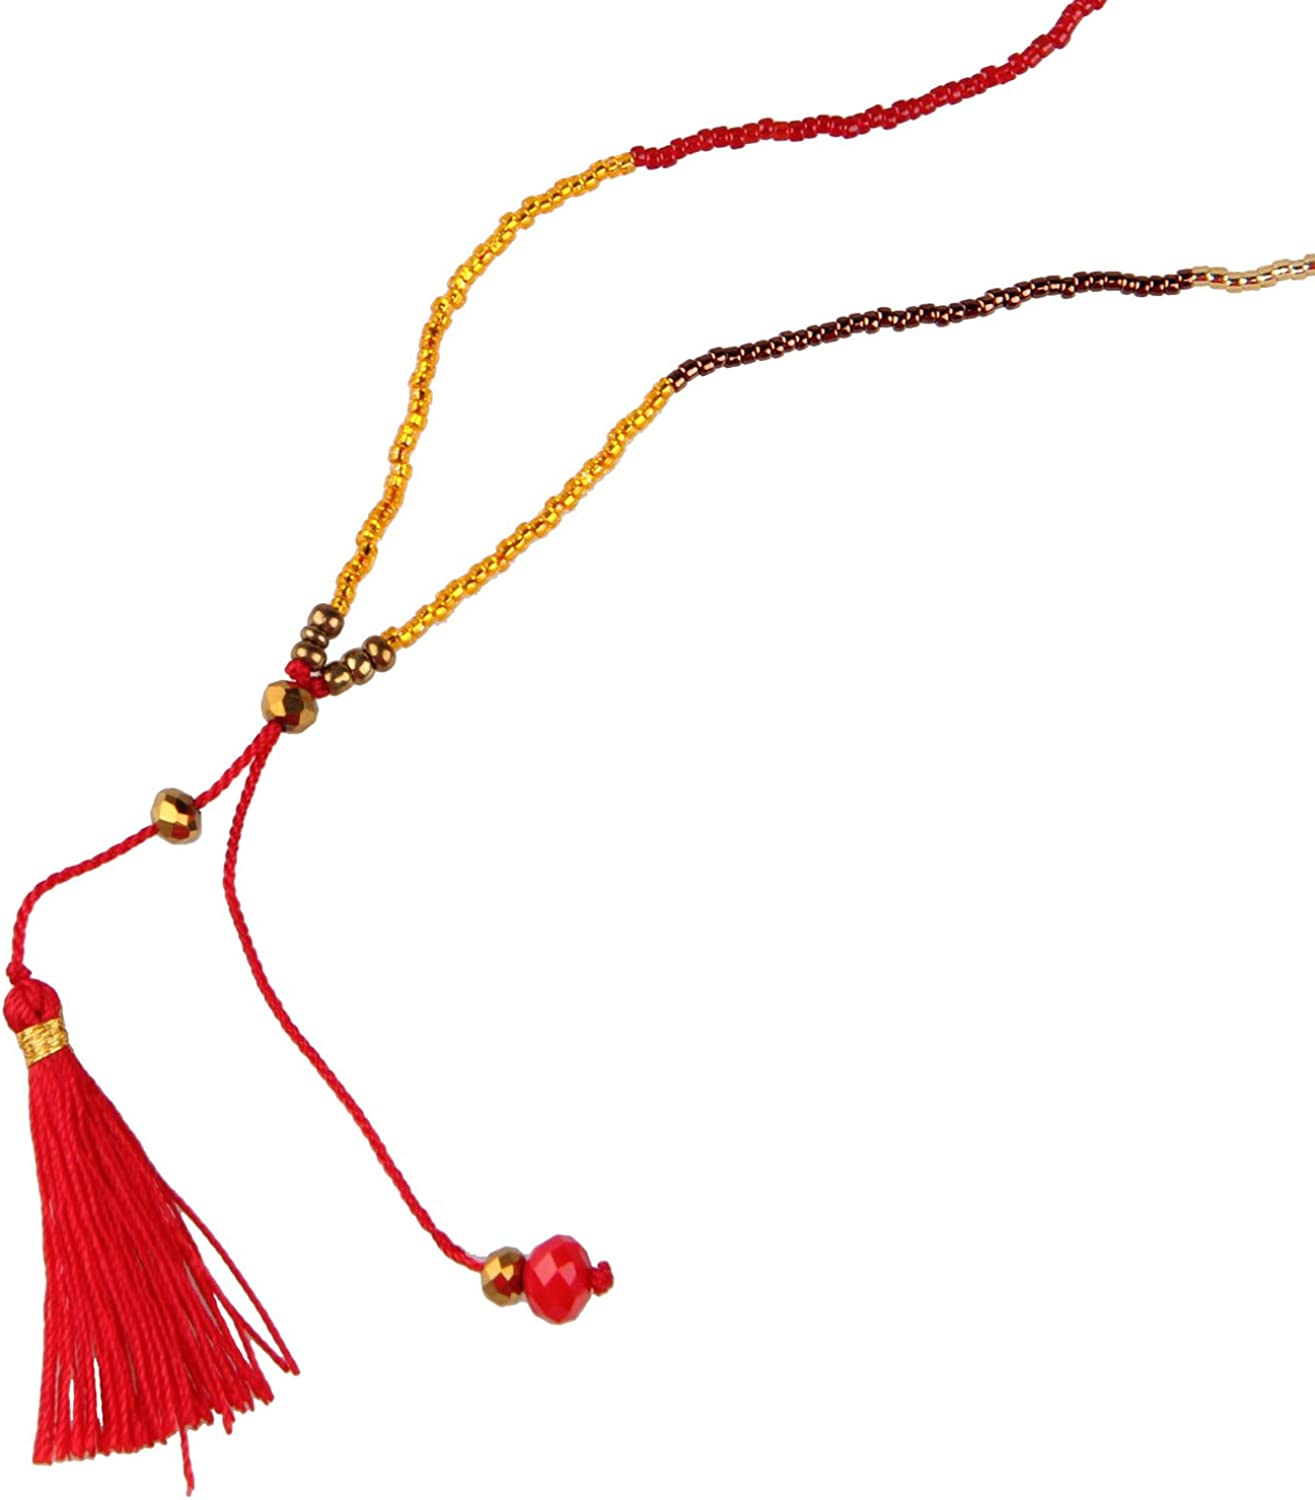 QQ/&U Layered Necklace with Tassel Pendant for Women